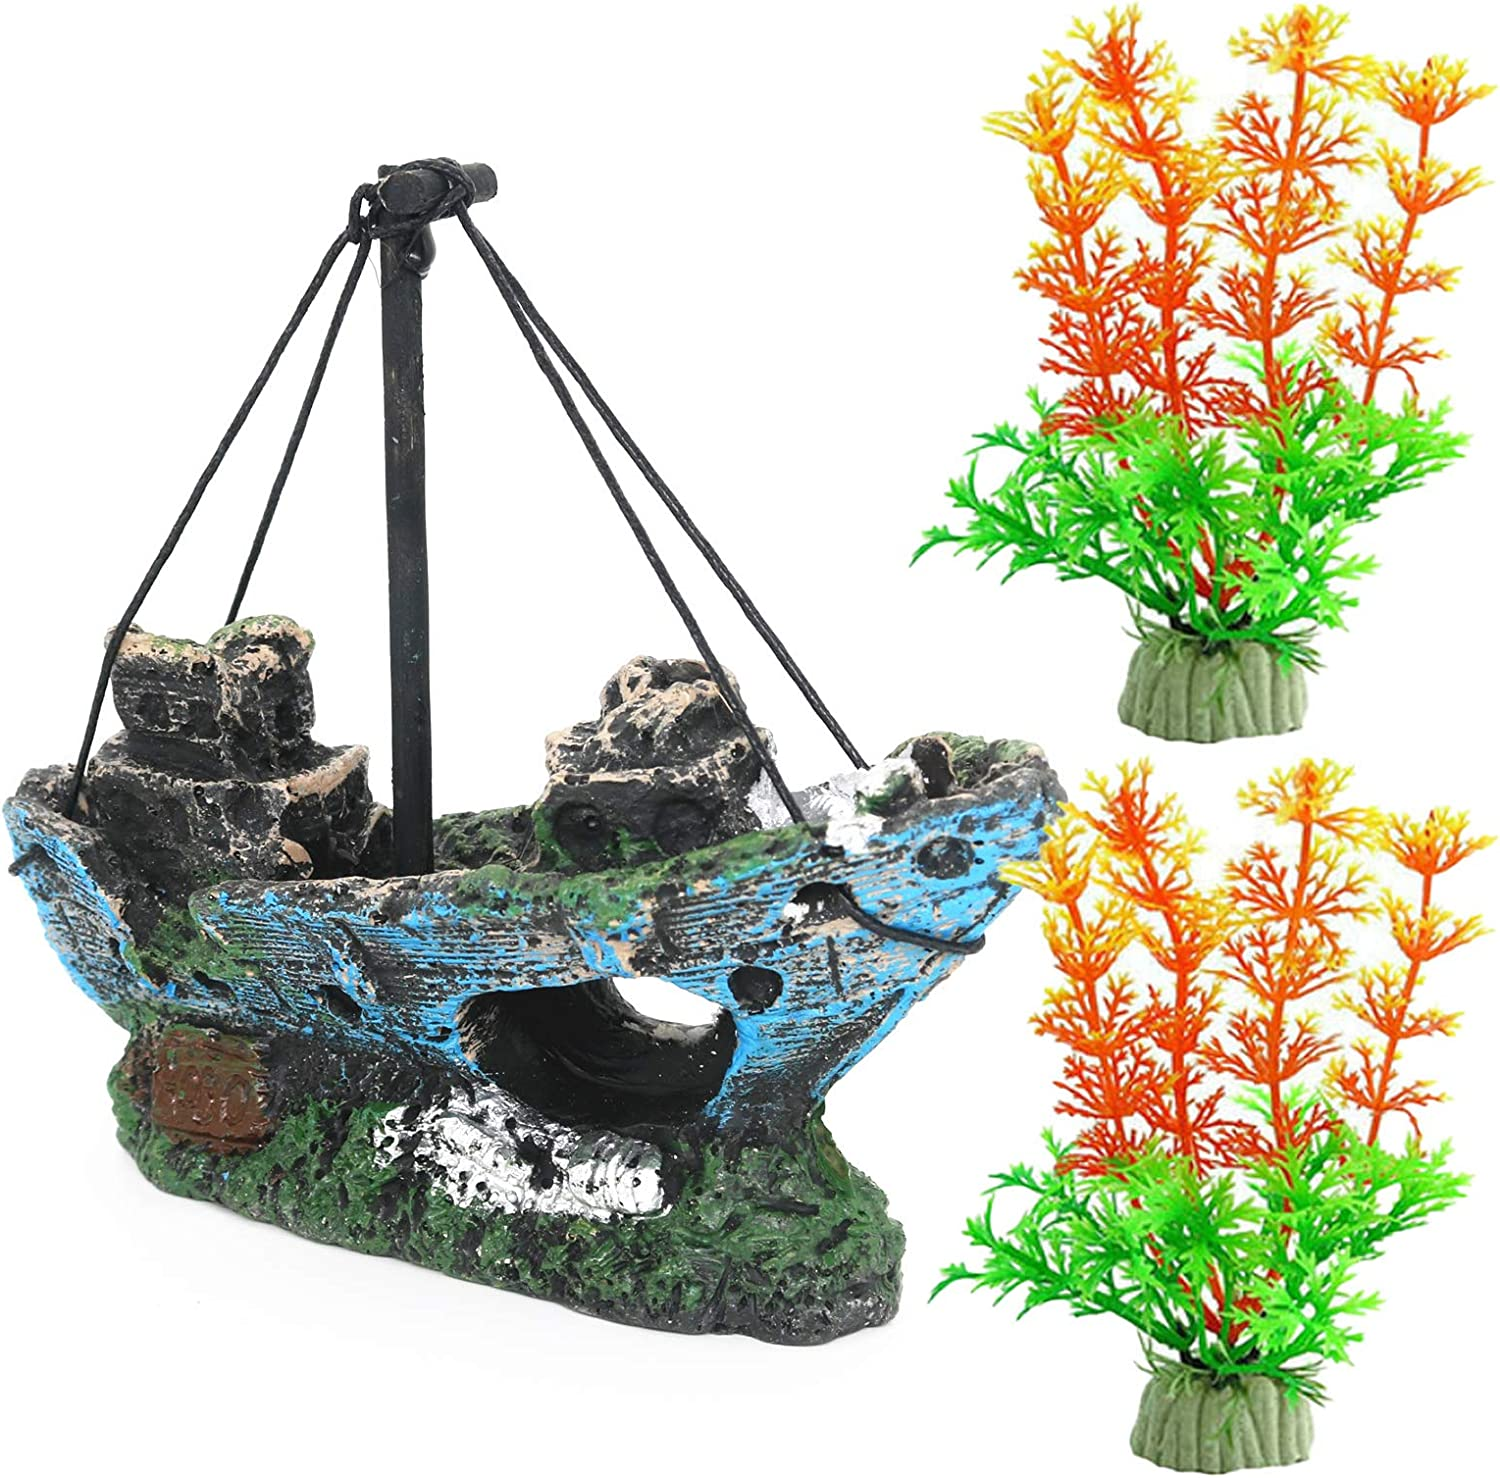 Magicwolf Aquarium Shipwreck Decorations Set Resin Sunken Ship Fish Tank Ornaments for Aquarium Environments Decor Accessories, Shipwreck x 1, Aquatic Plant x 2